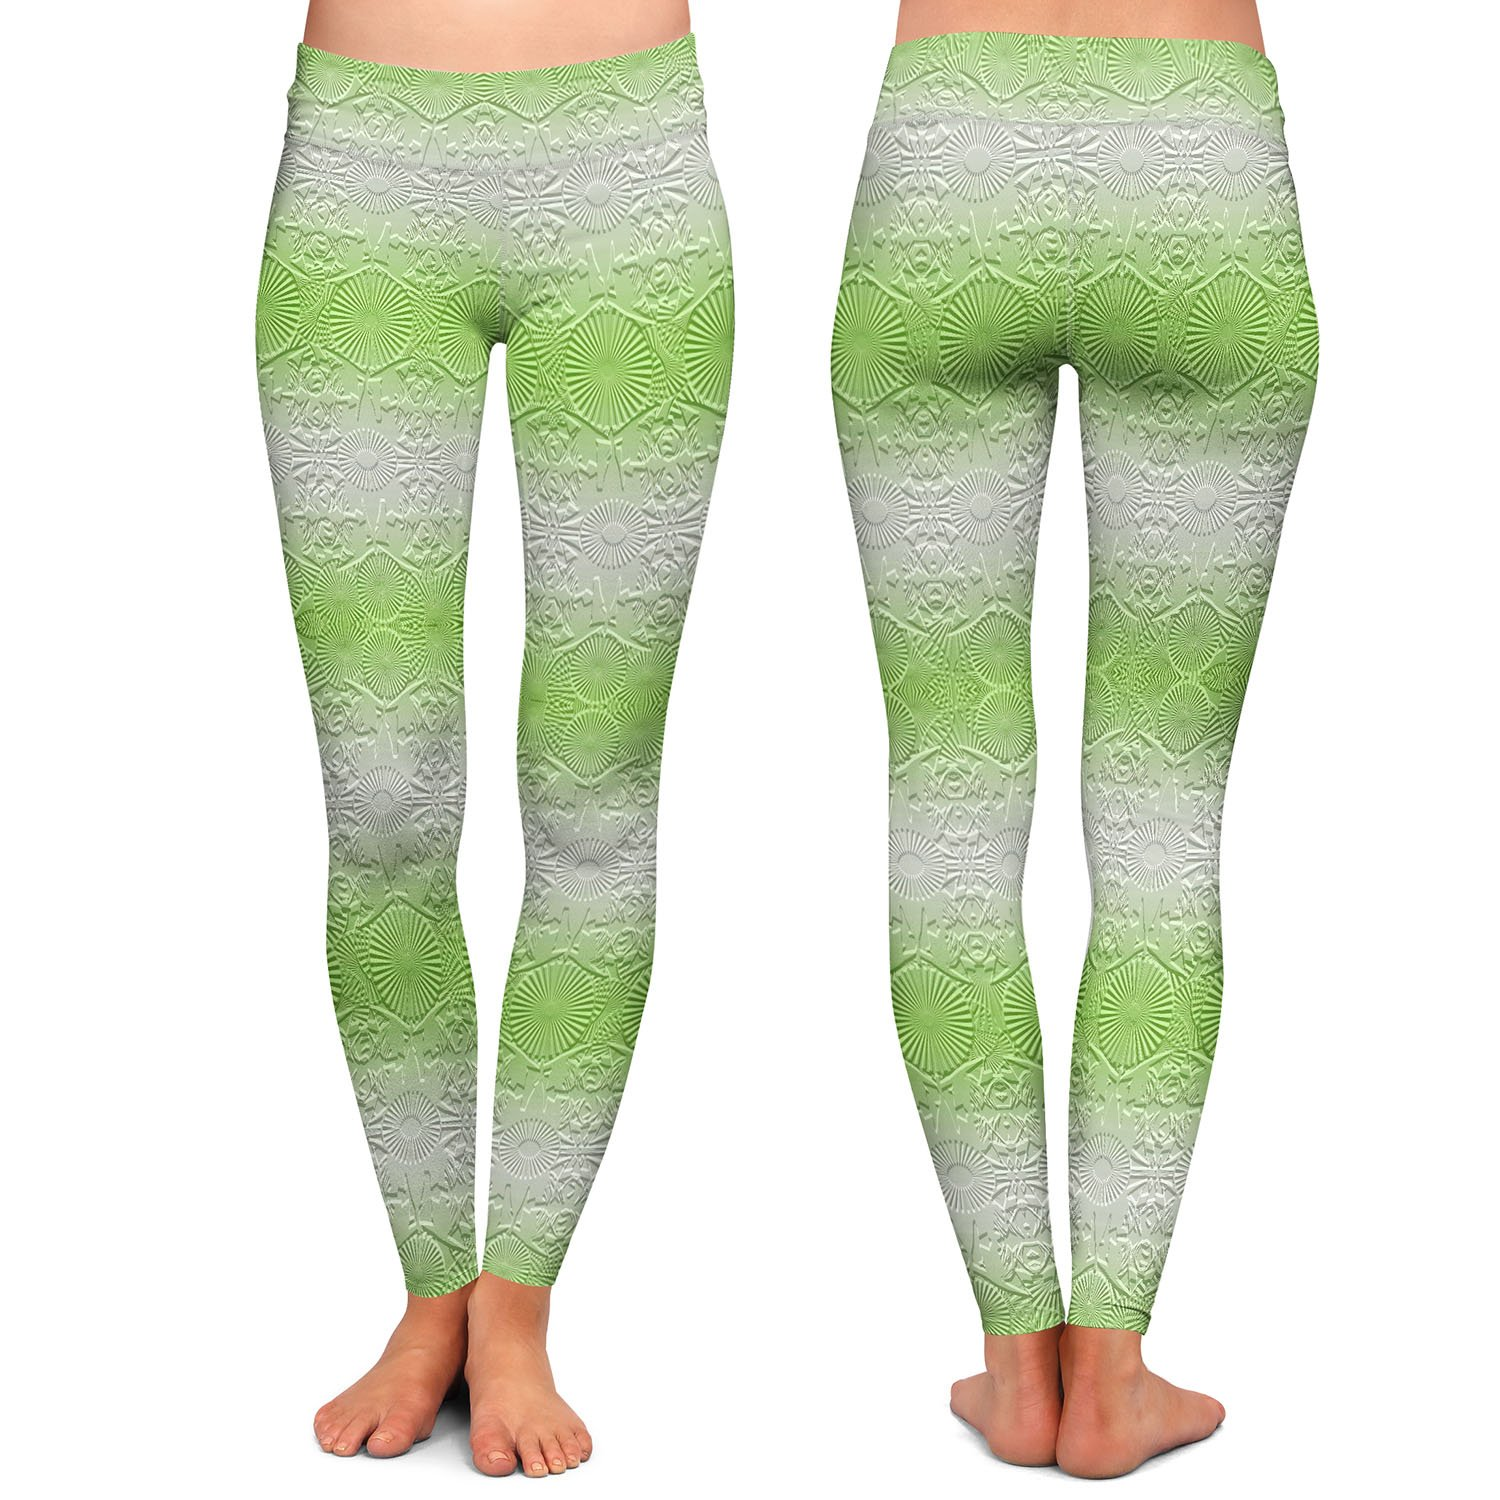 North East 2 Soft Lime Athletic Yoga Leggings from DiaNoche Designs by Susie Kunzelman